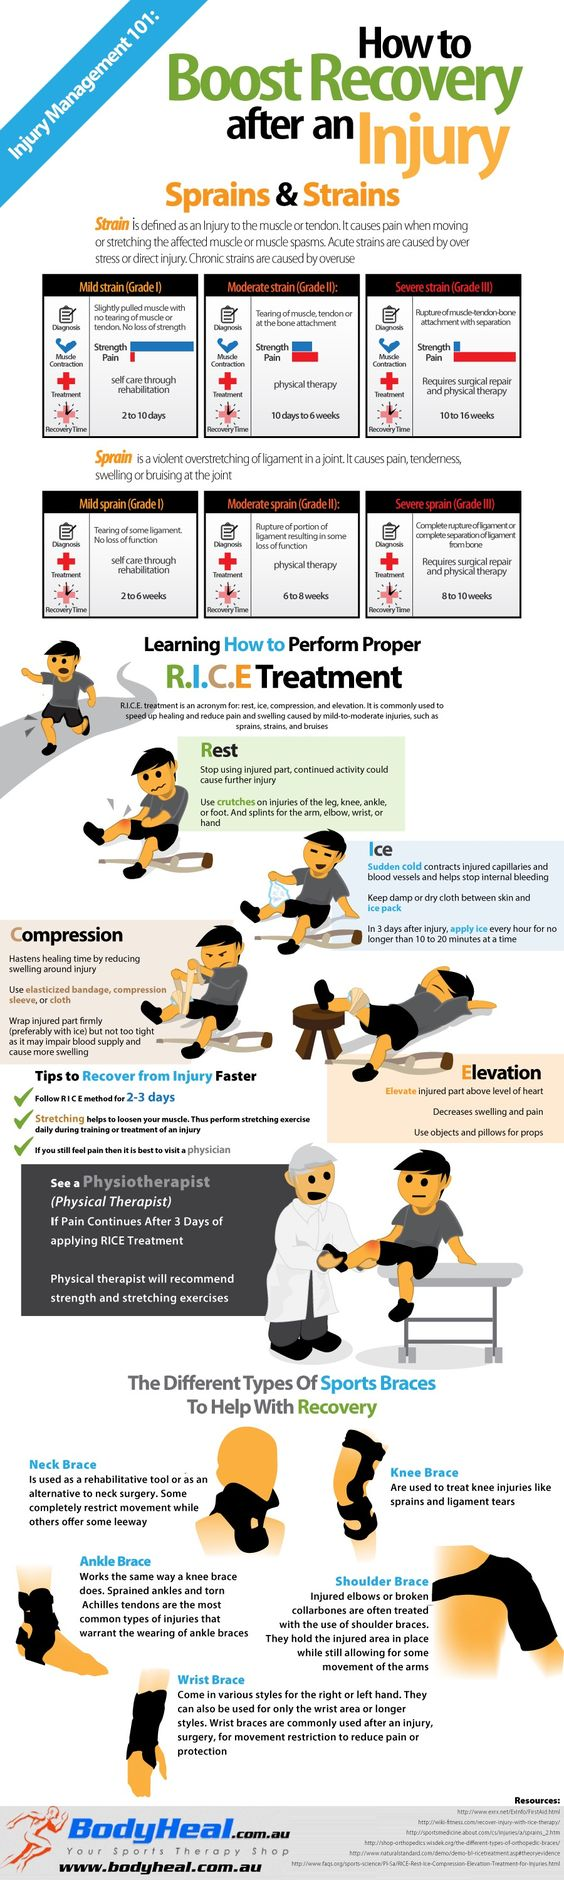 The infographic shows the basics of how to recover from a sports injury using R.I.C.E. (Rest, Ice, Compression, Elevation) #Tribesports #ownyourmarks #running #run